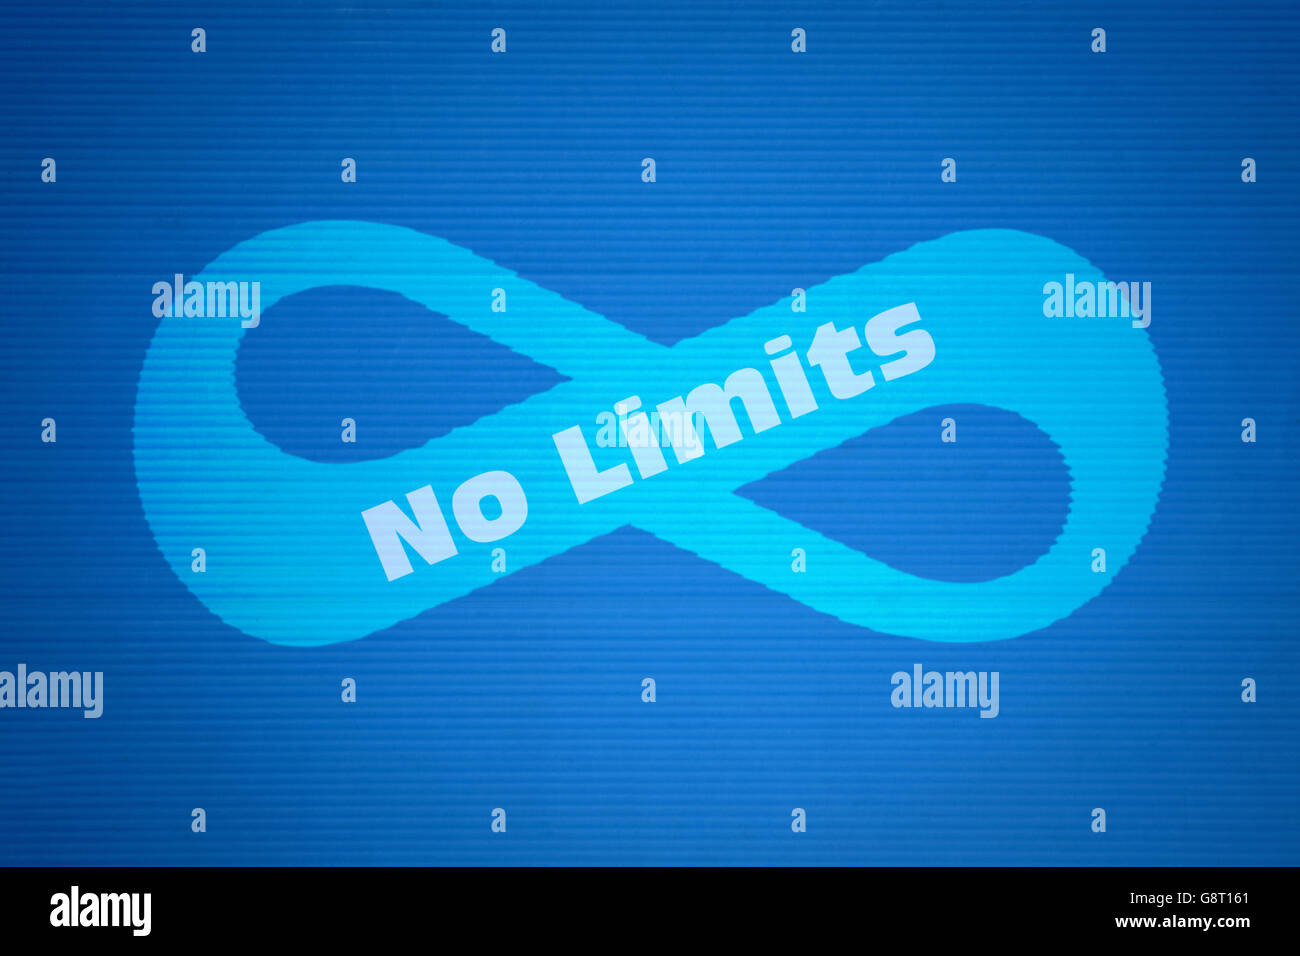 Mathematical symbol of infinity and text no limits on blue mathematical symbol of infinity and text no limits on blue background biocorpaavc